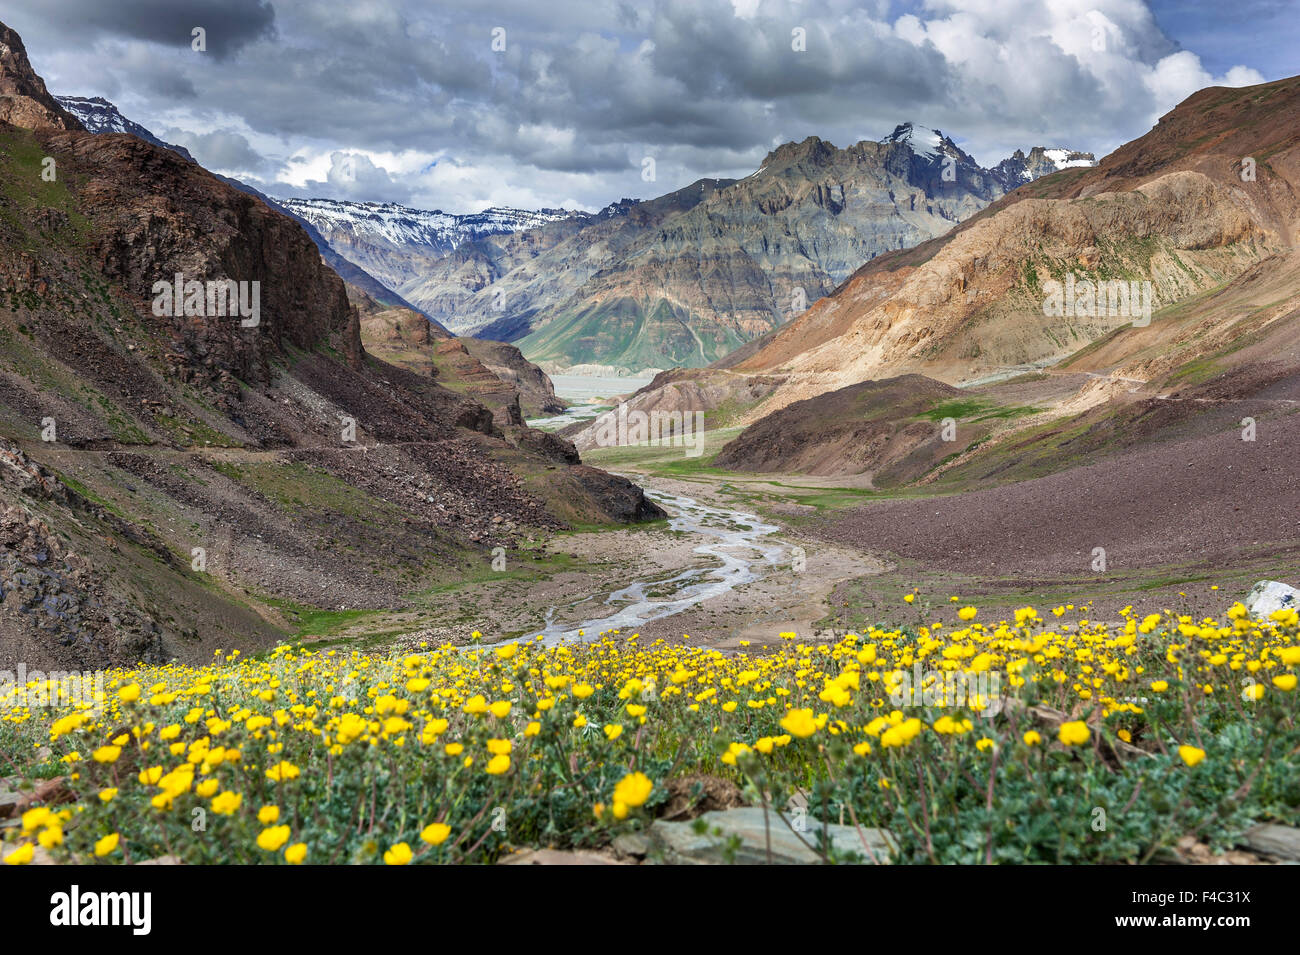 Valley of flowers on the way to kaza in himachal pradesh stock photo valley of flowers on the way to kaza in himachal pradesh sciox Gallery